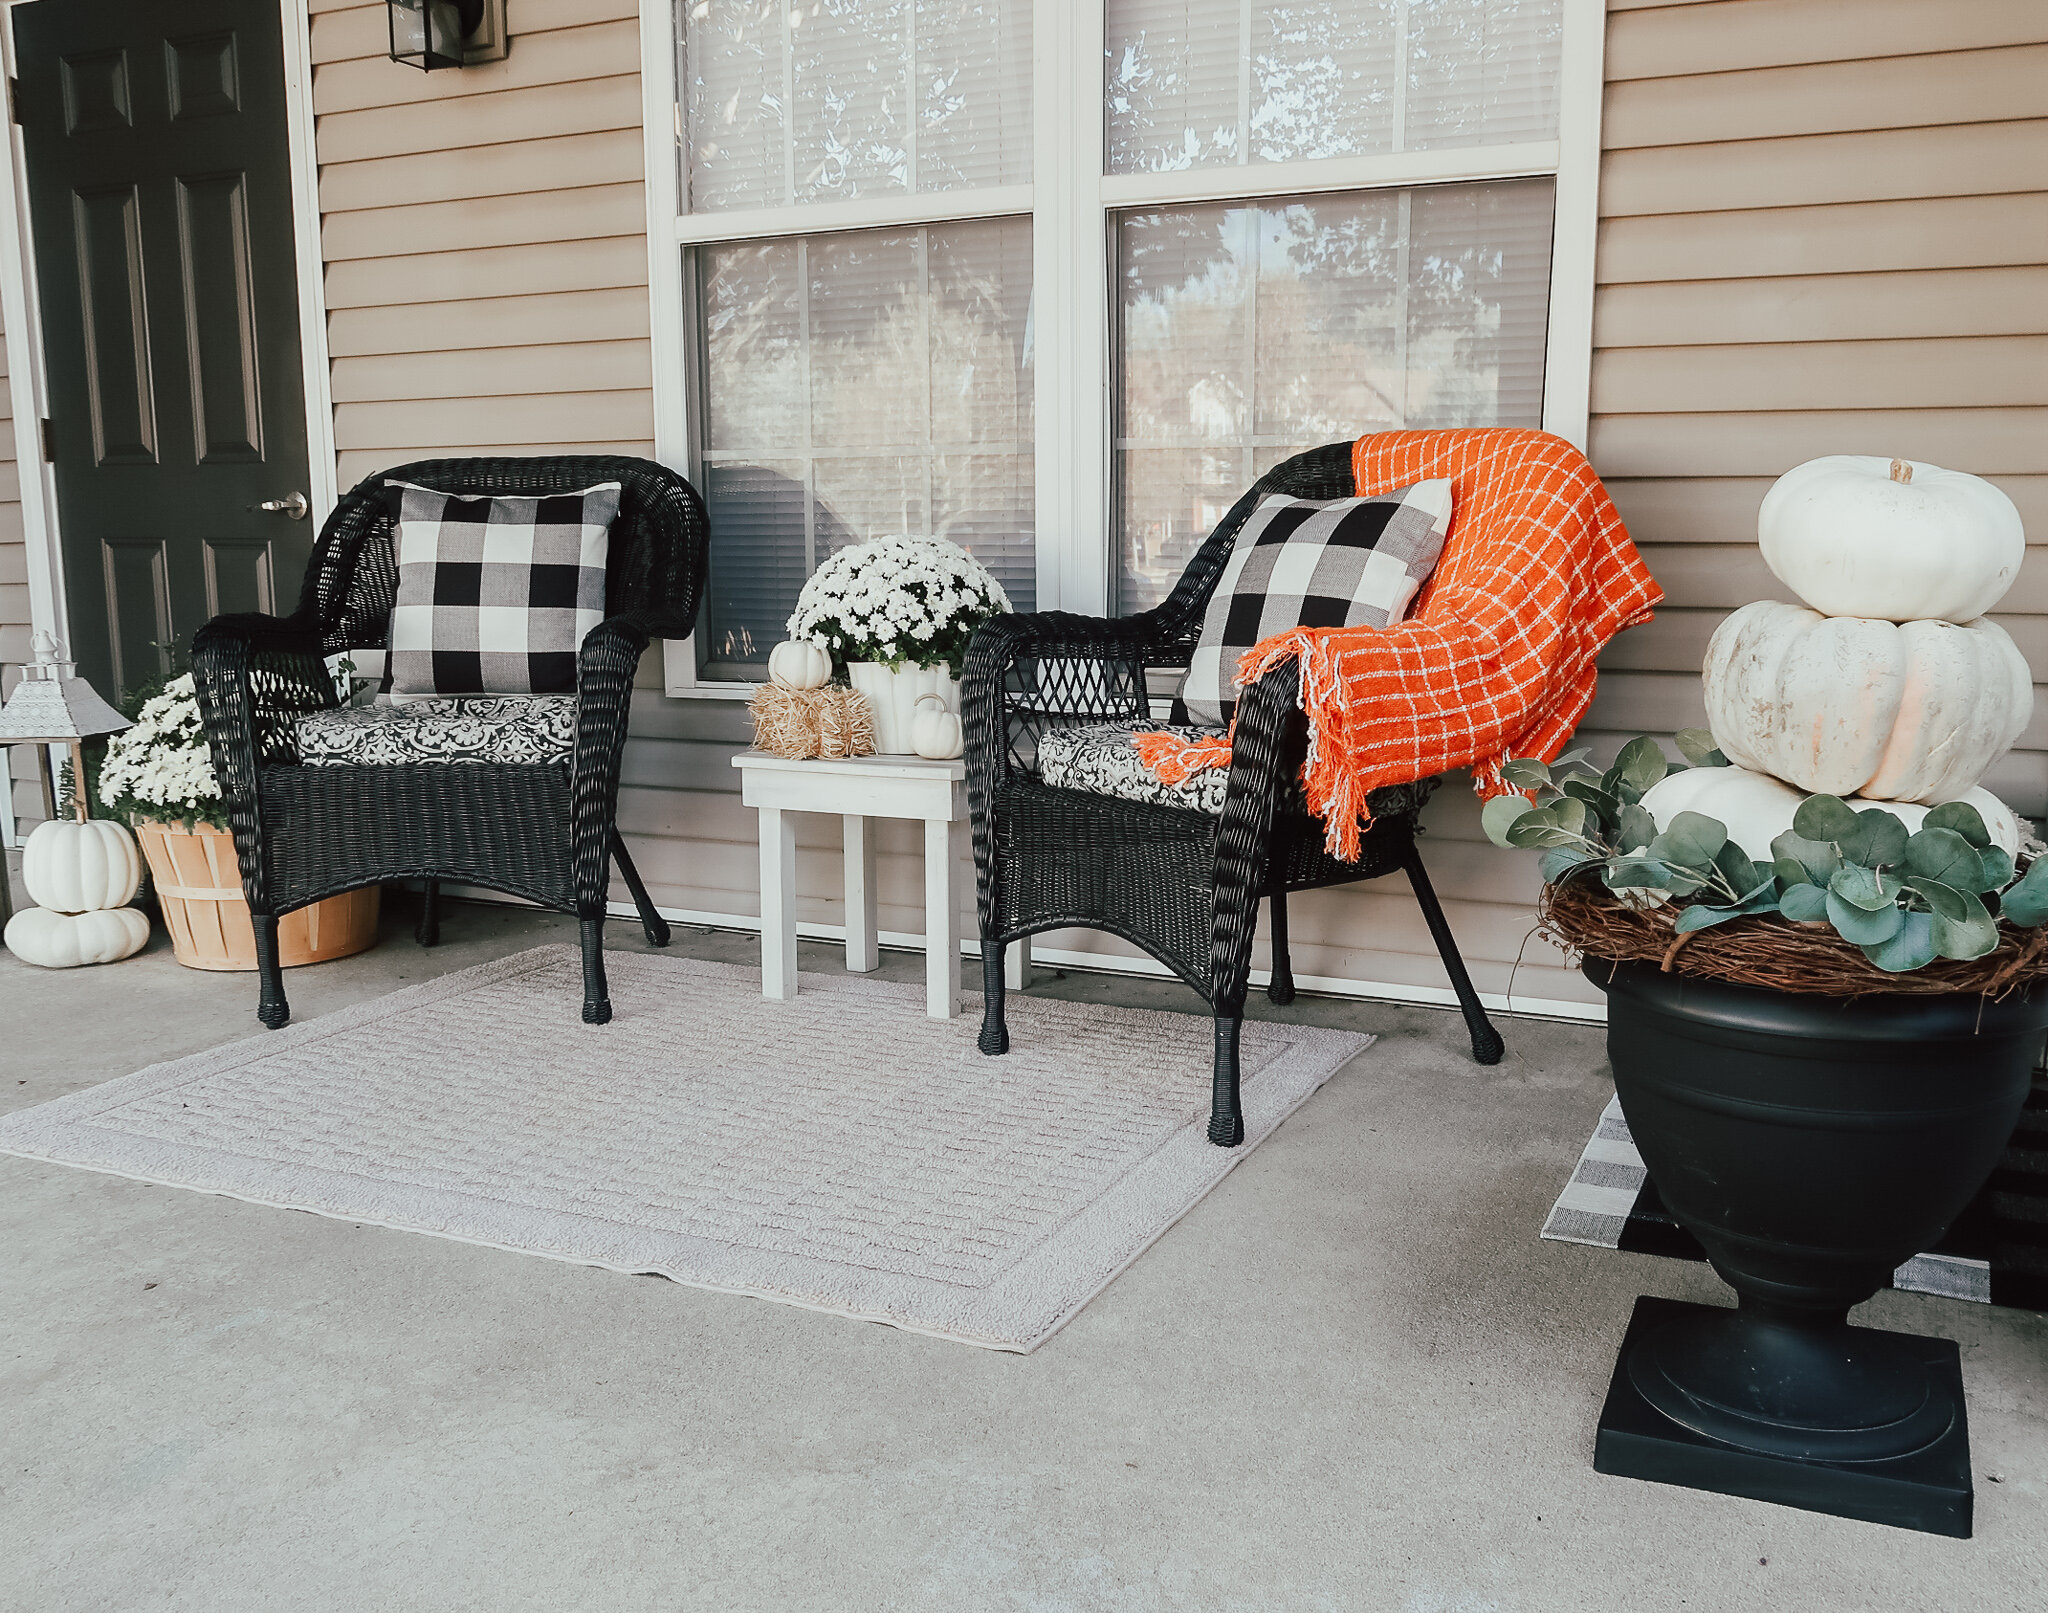 fall-front-porch-decor-3.jpg